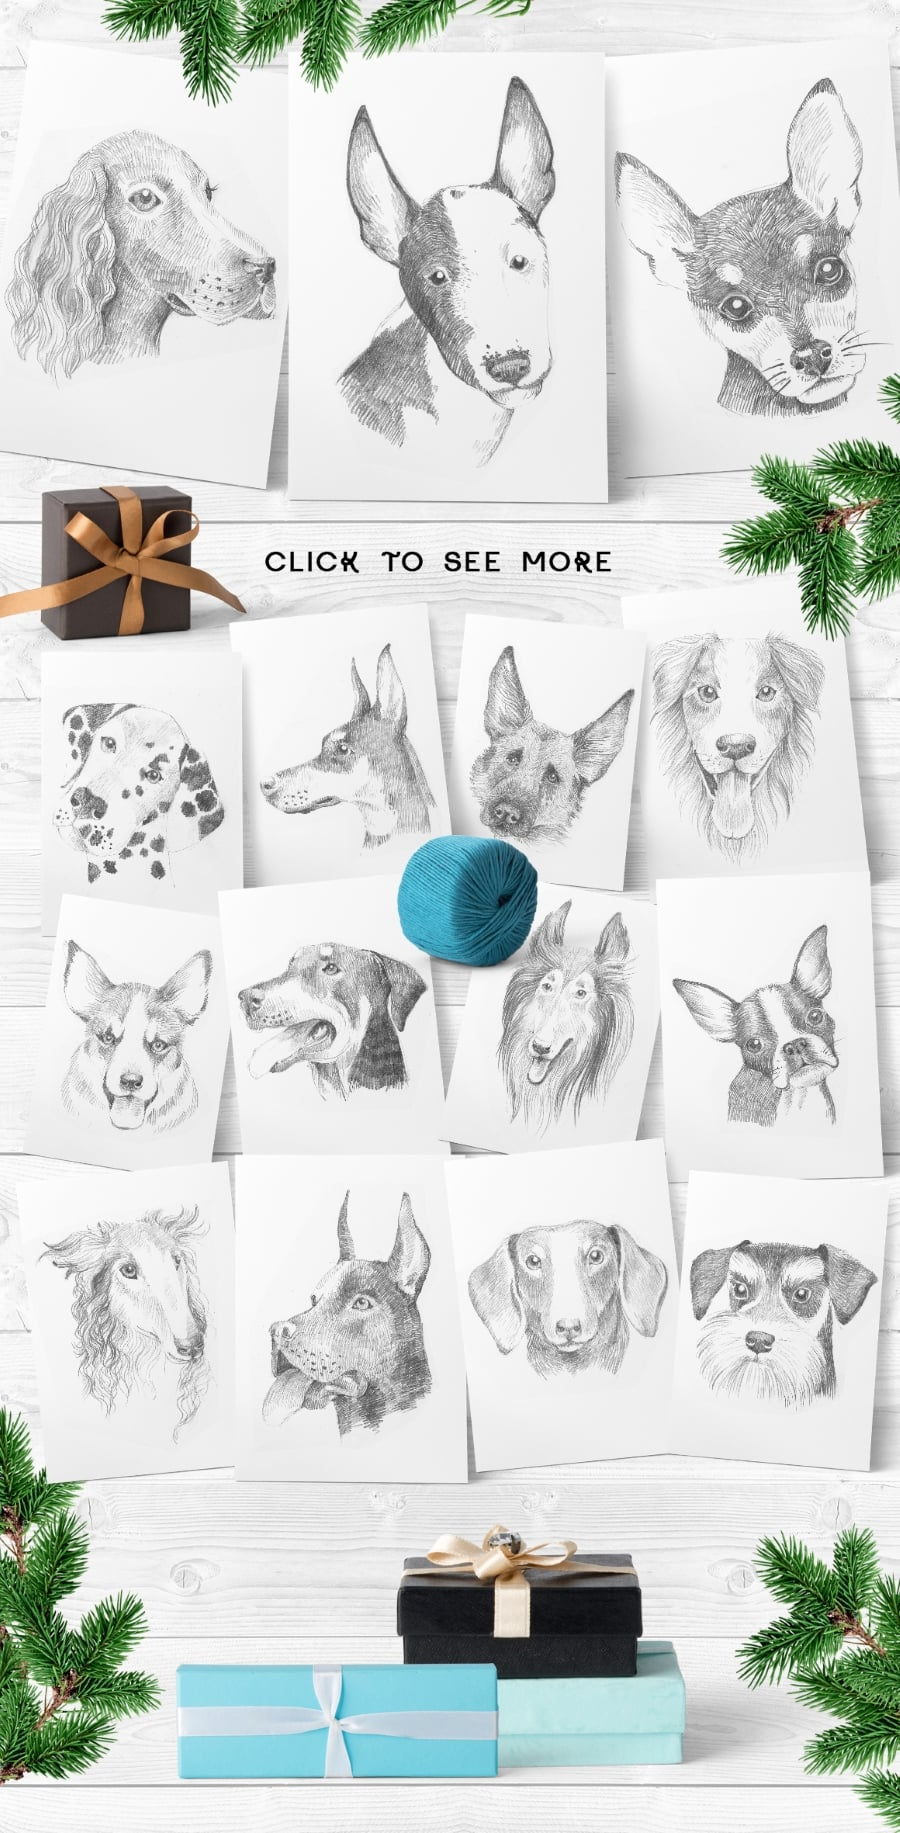 New Year Bundle: 15 Different Dog Breeds and Elements - prev2 2